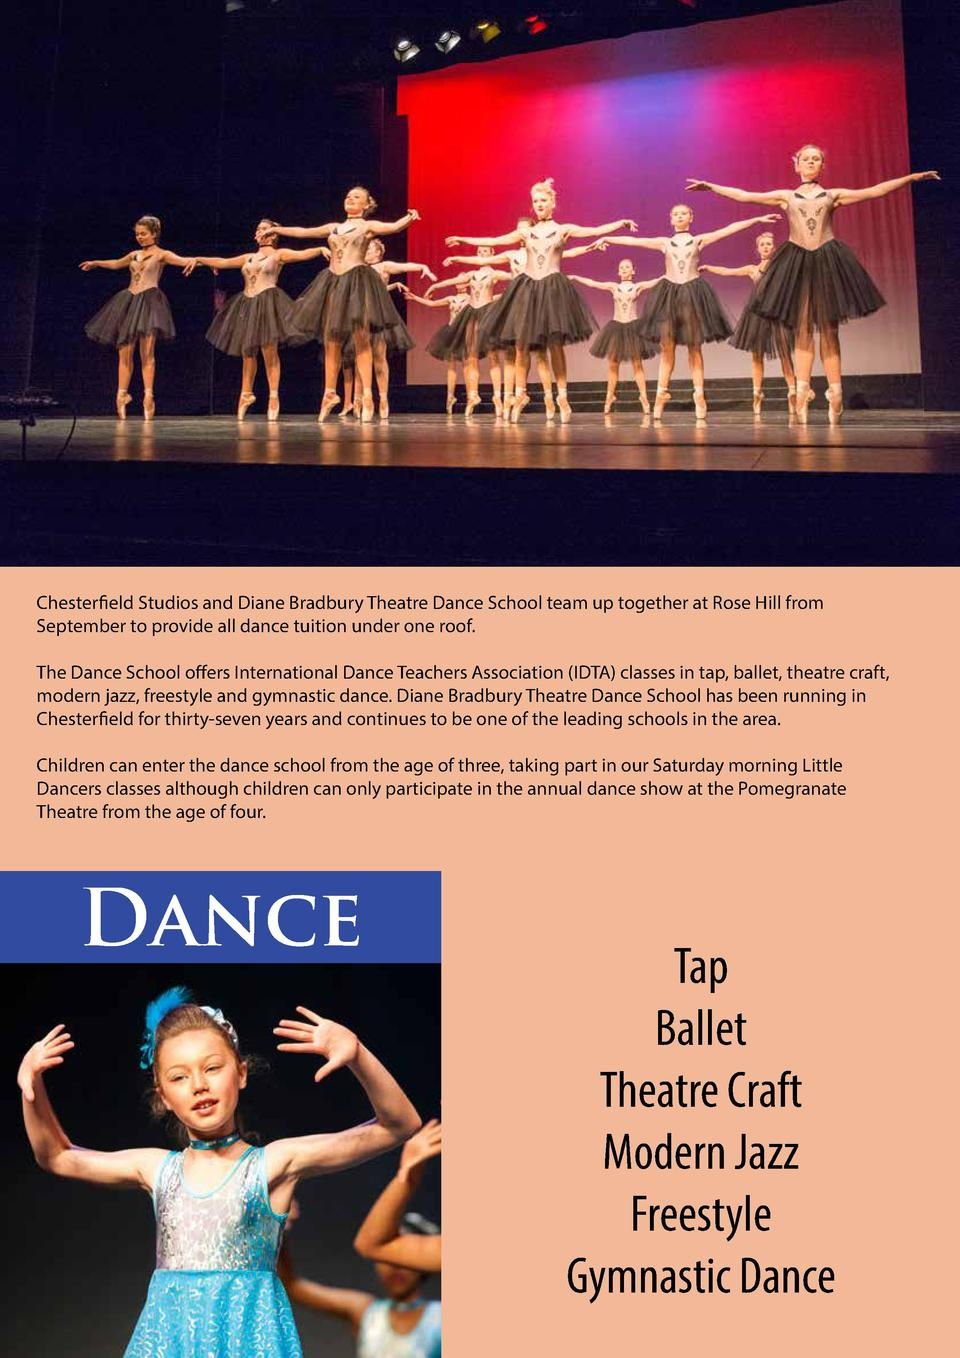 Chesterfield Studios and Diane Bradbury Theatre Dance School team up together at Rose Hill from September to provide all d...